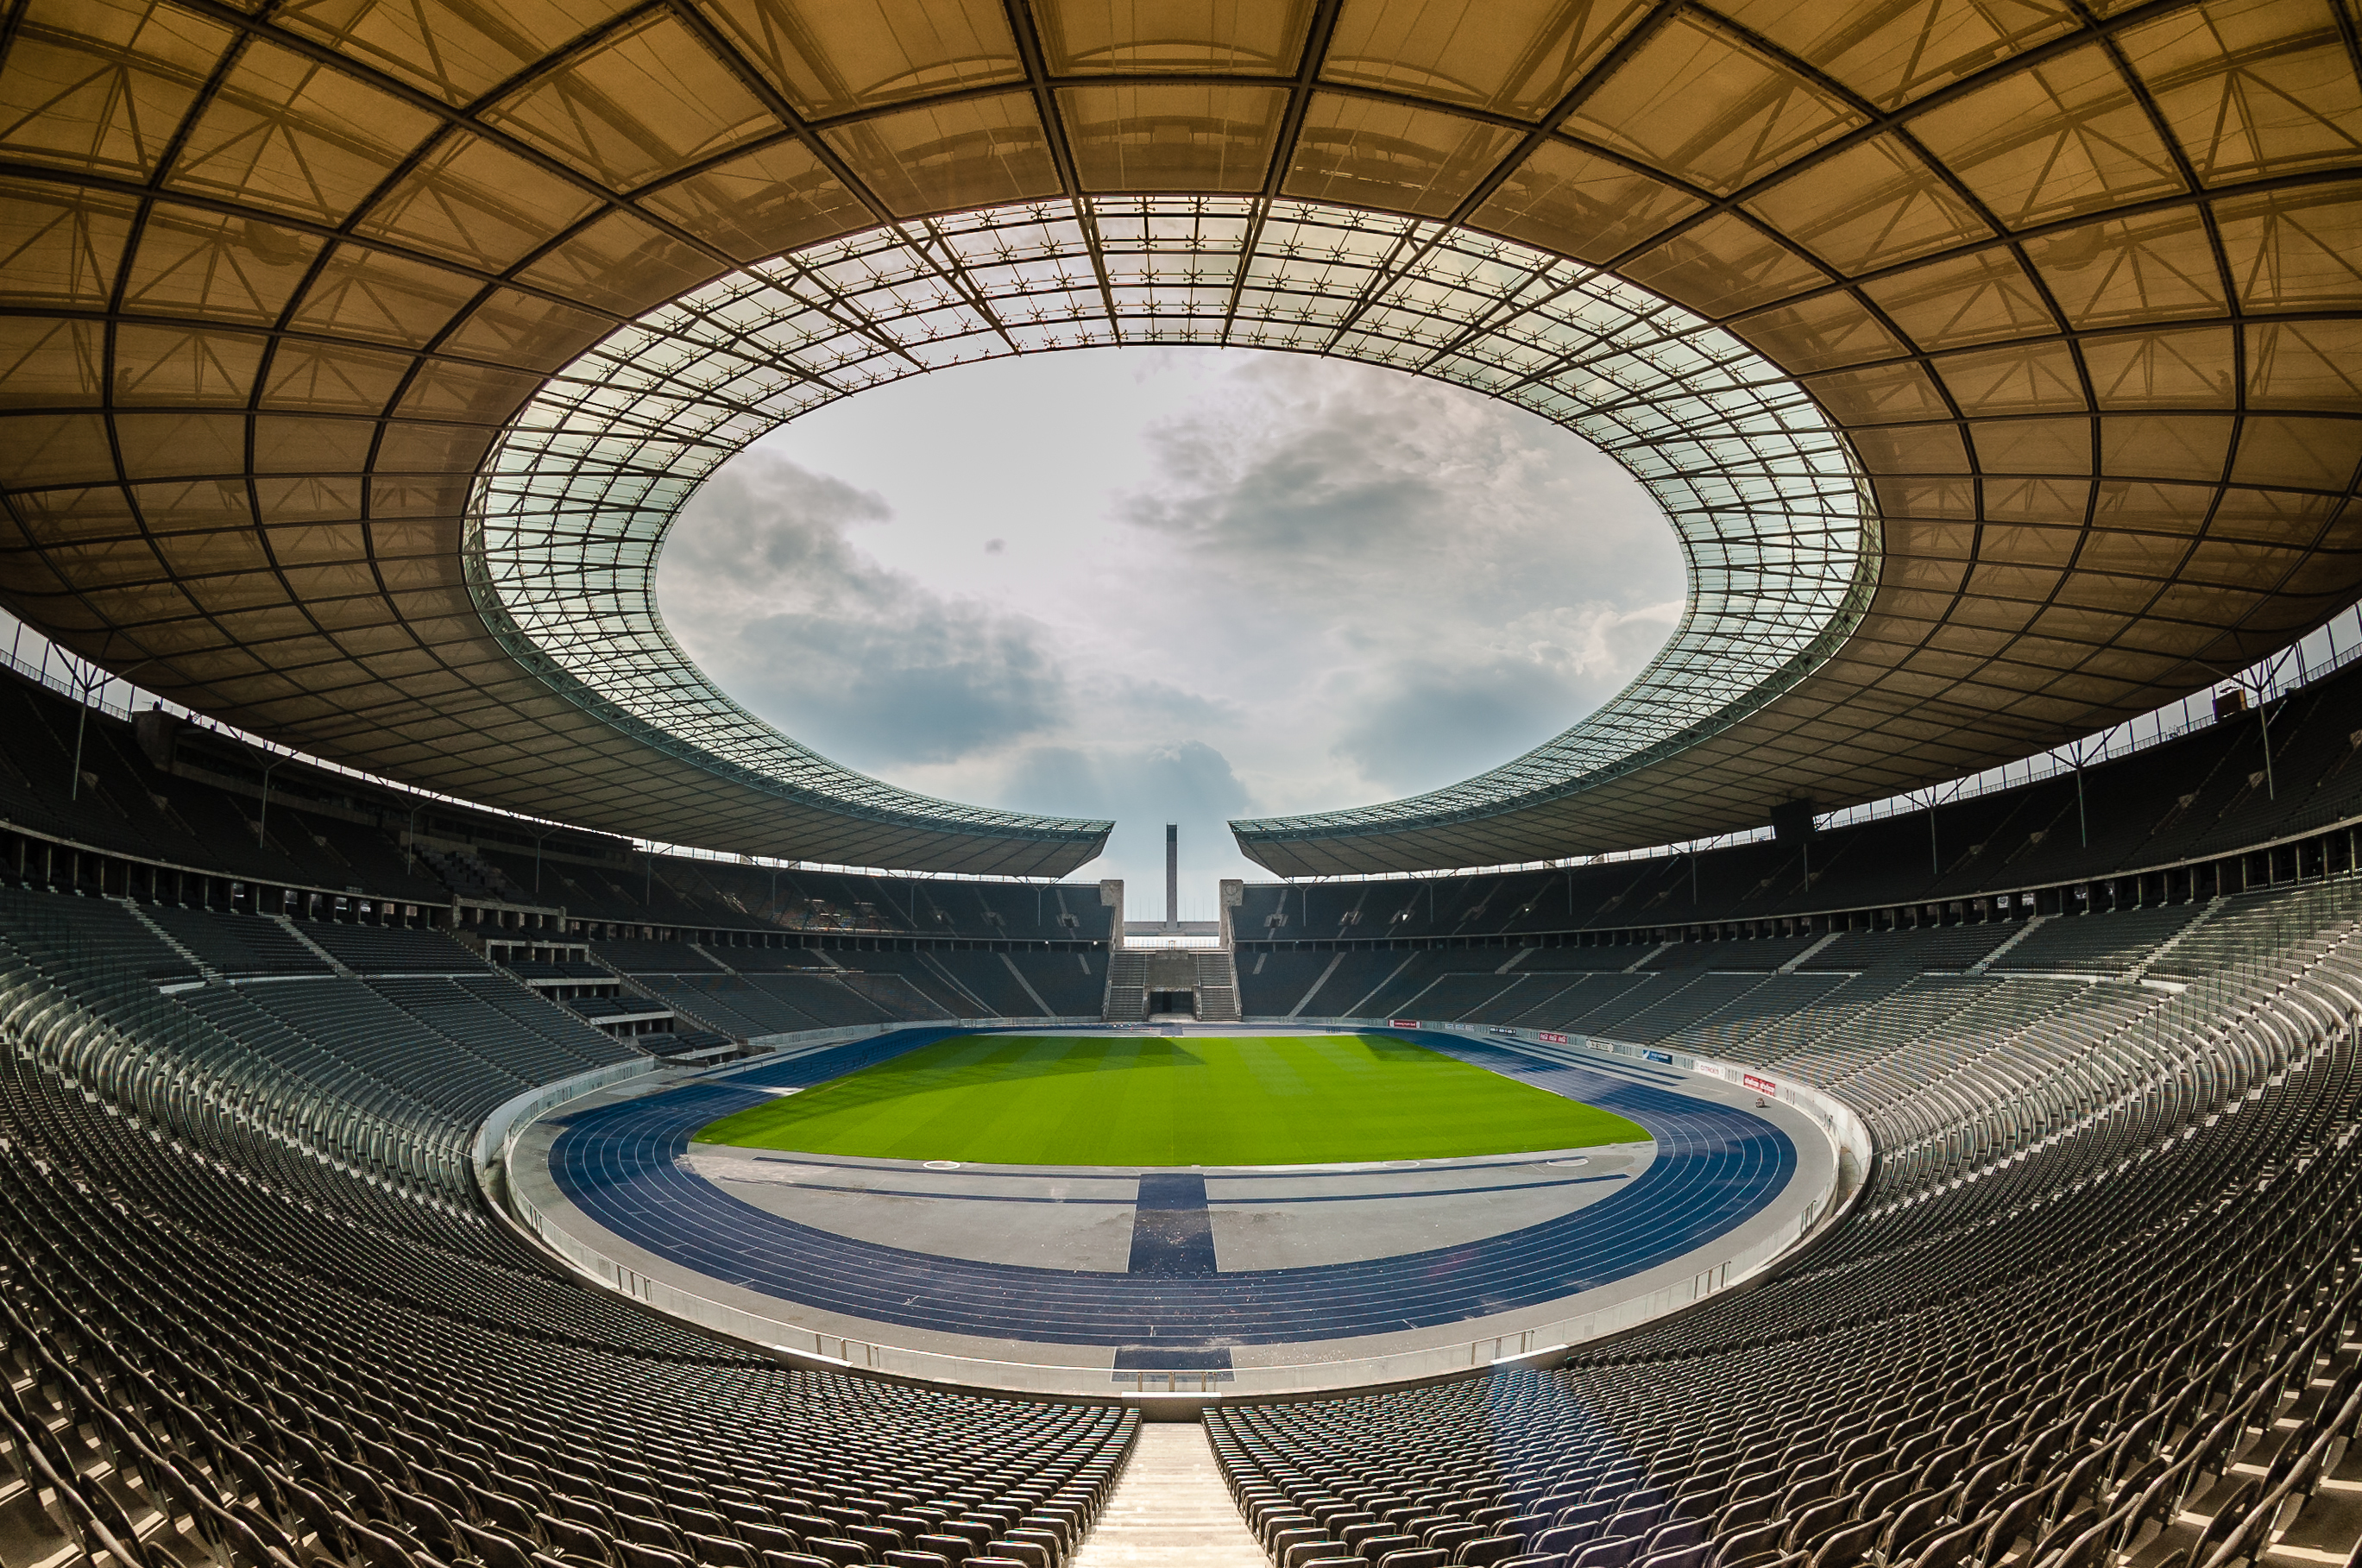 Berlin, Germany - April 17, 2013: View of an empty Berlin's Olympia Stadium built for the 1936 Summer Olympics.